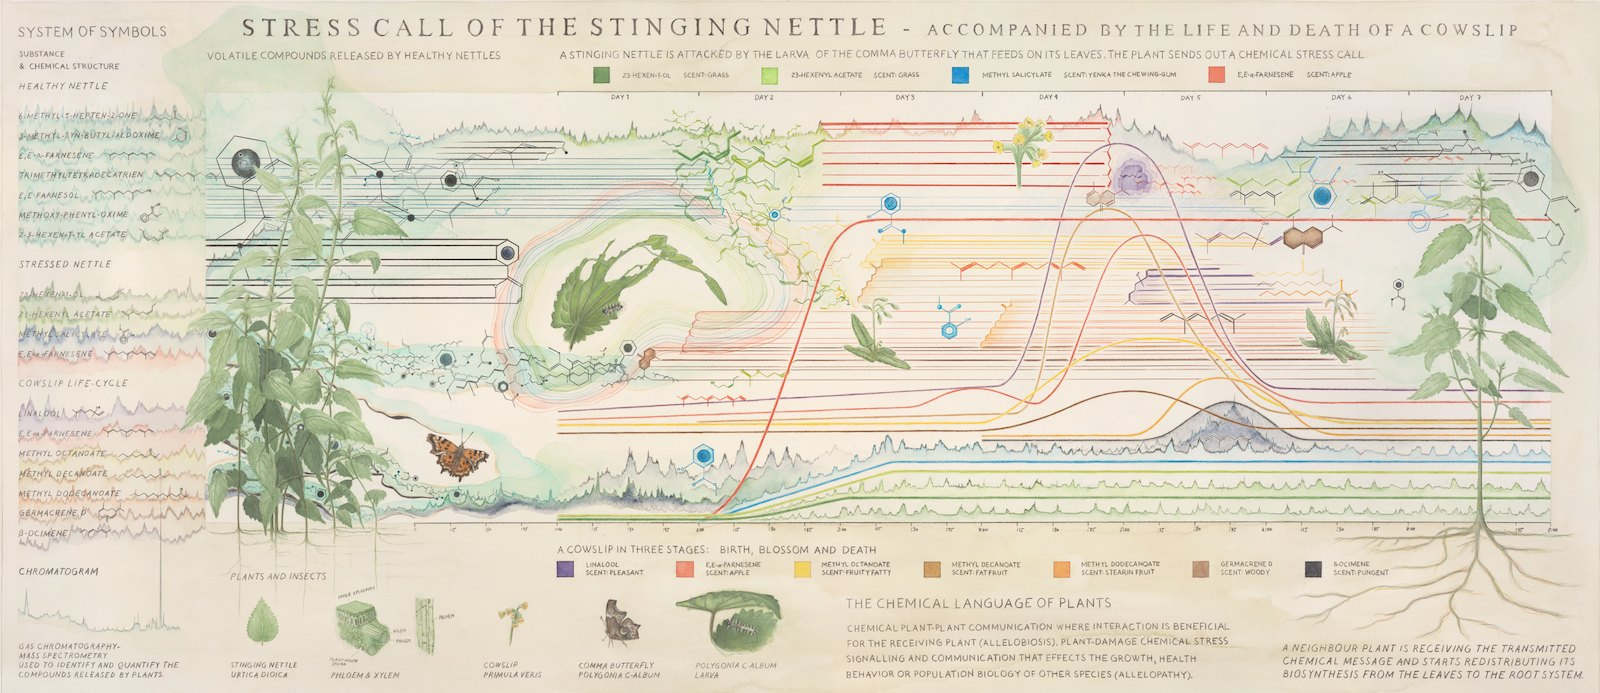 Stress Call of the Stinging Nettle, 2010, water color and pen on paper, 85 x 197 cm